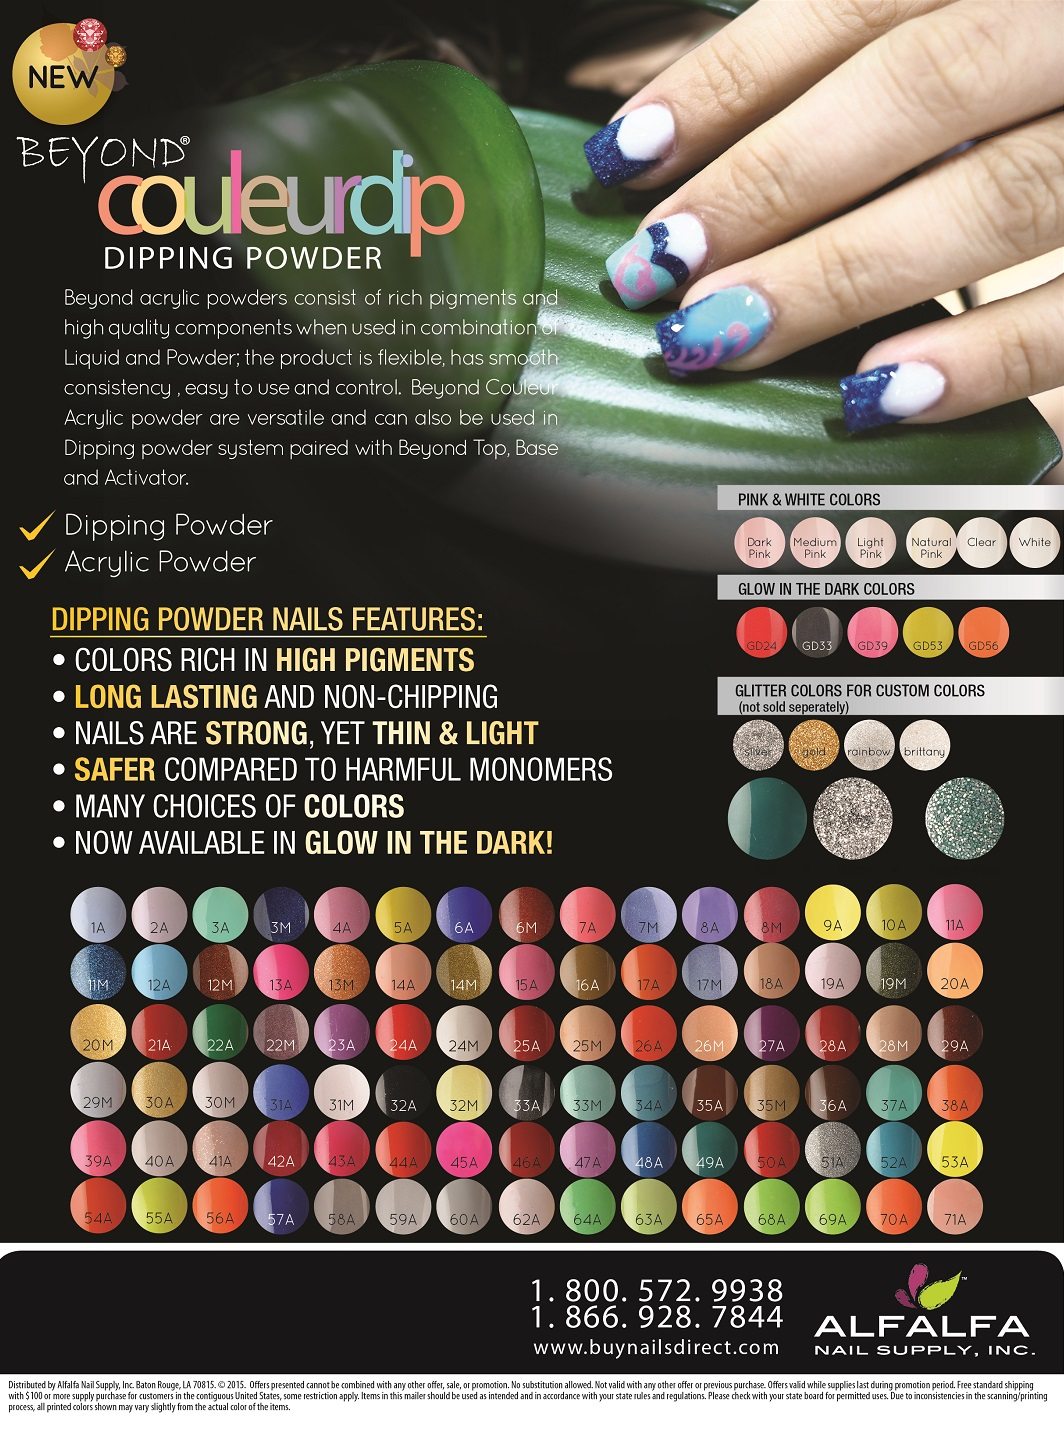 Beyond 2-in-1 Acrylic Dipping Powder Color Chart.jpg